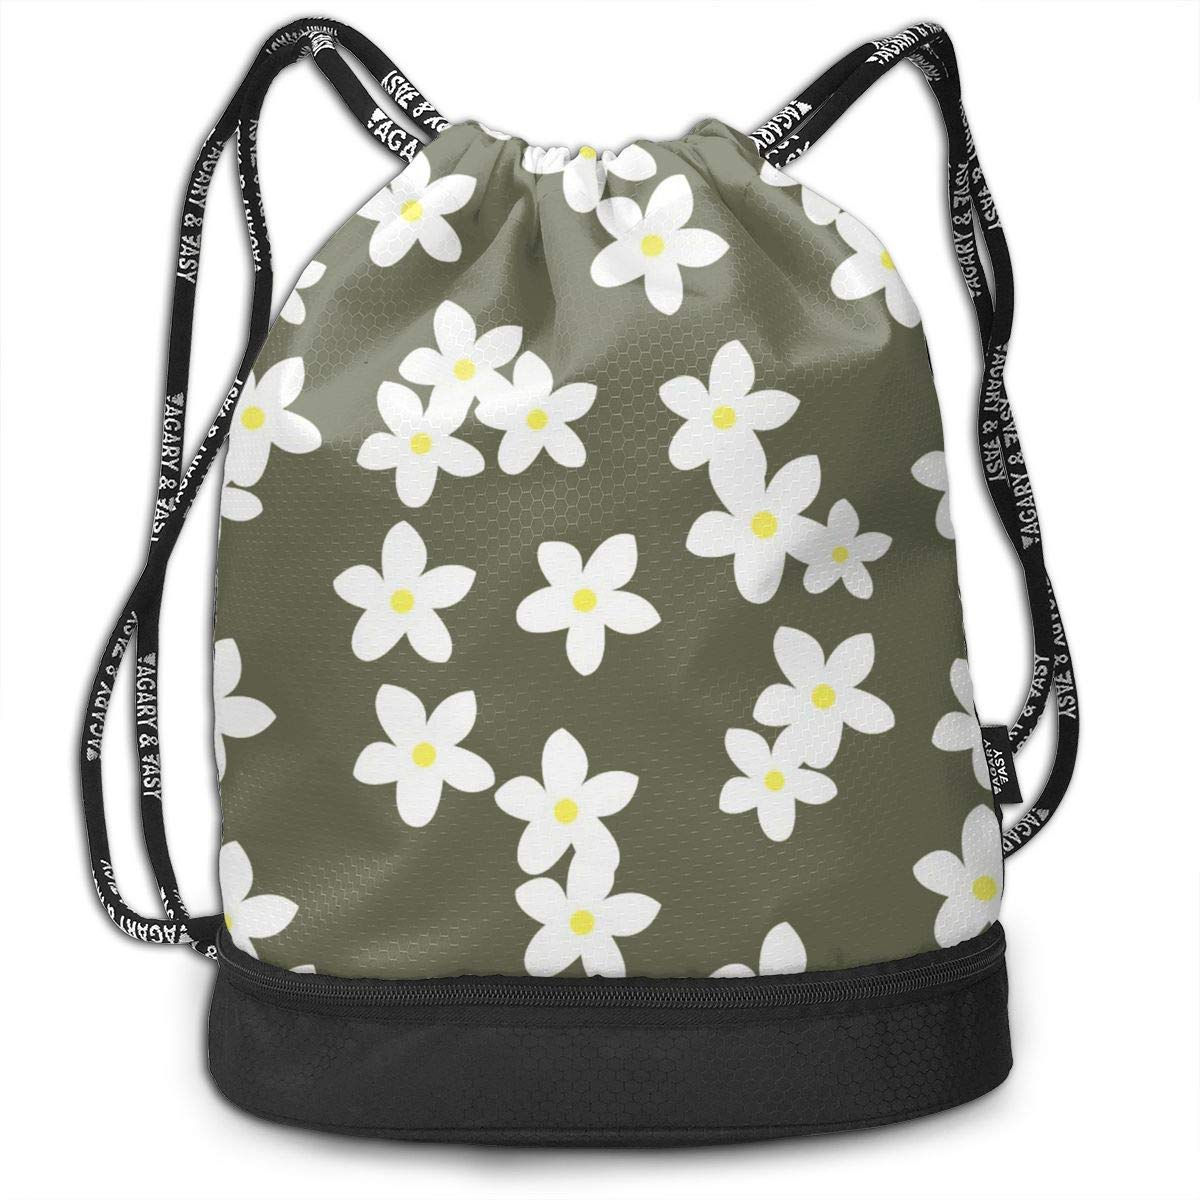 4dc631e76e51 Amazon.com  Airealy White Flowers Outdoor Bundle Backpack Drawstring  Backpack Bags Pack Travel Sport Gym Sack Bag for Men Women and Kids  Sports    Outdoors